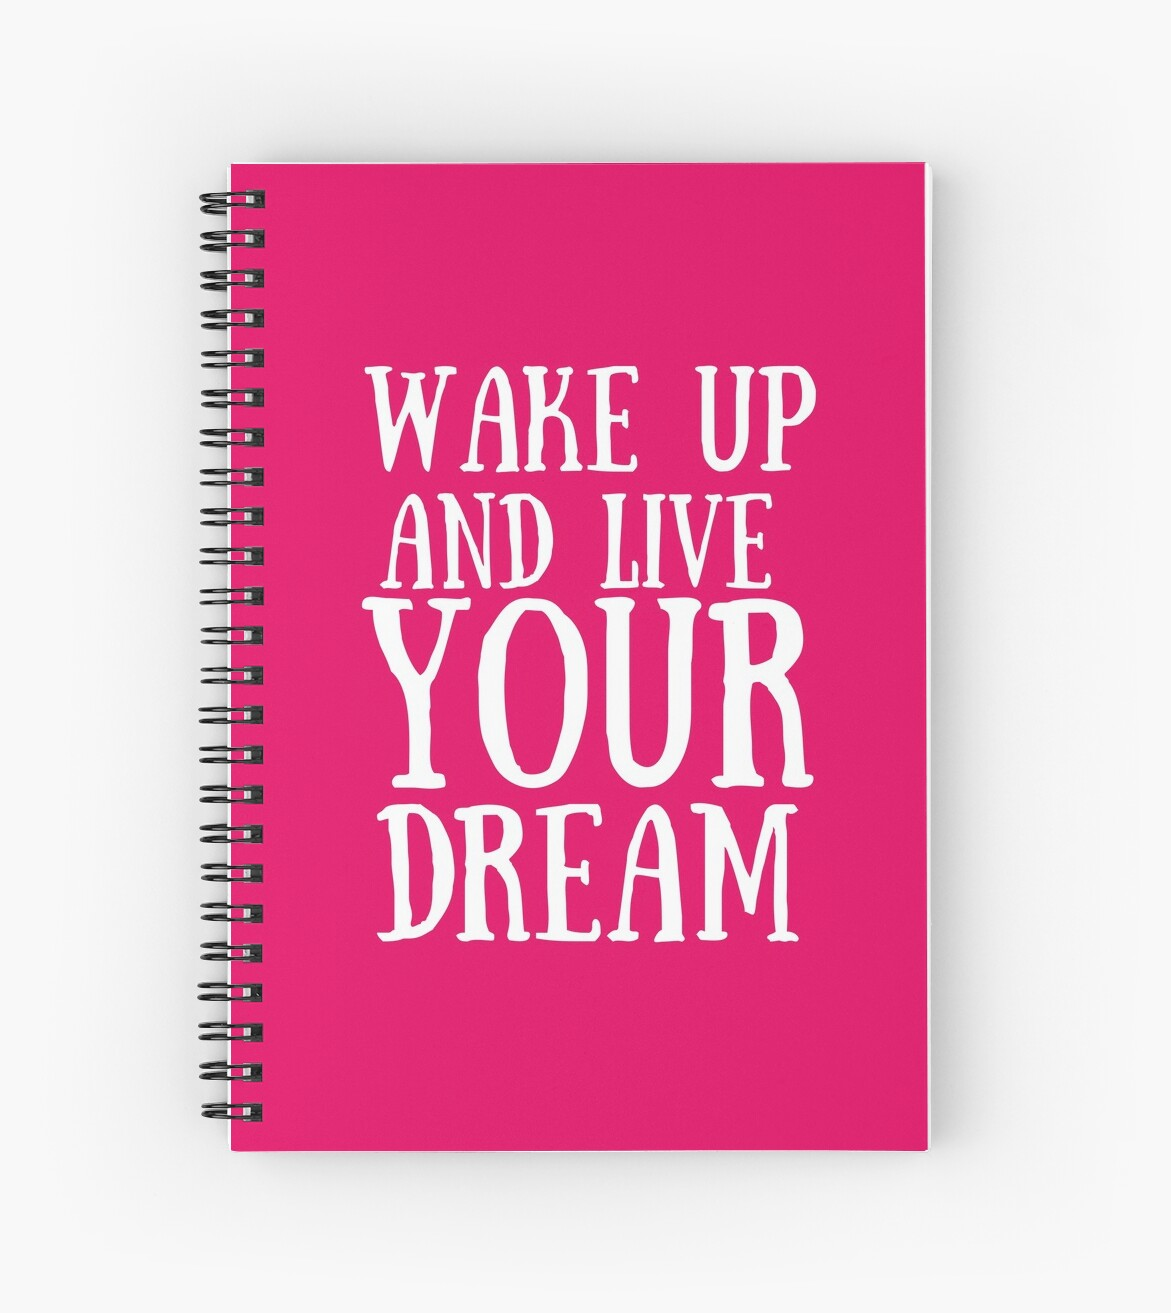 Wake up and live your dream (pink) by Maya Mey